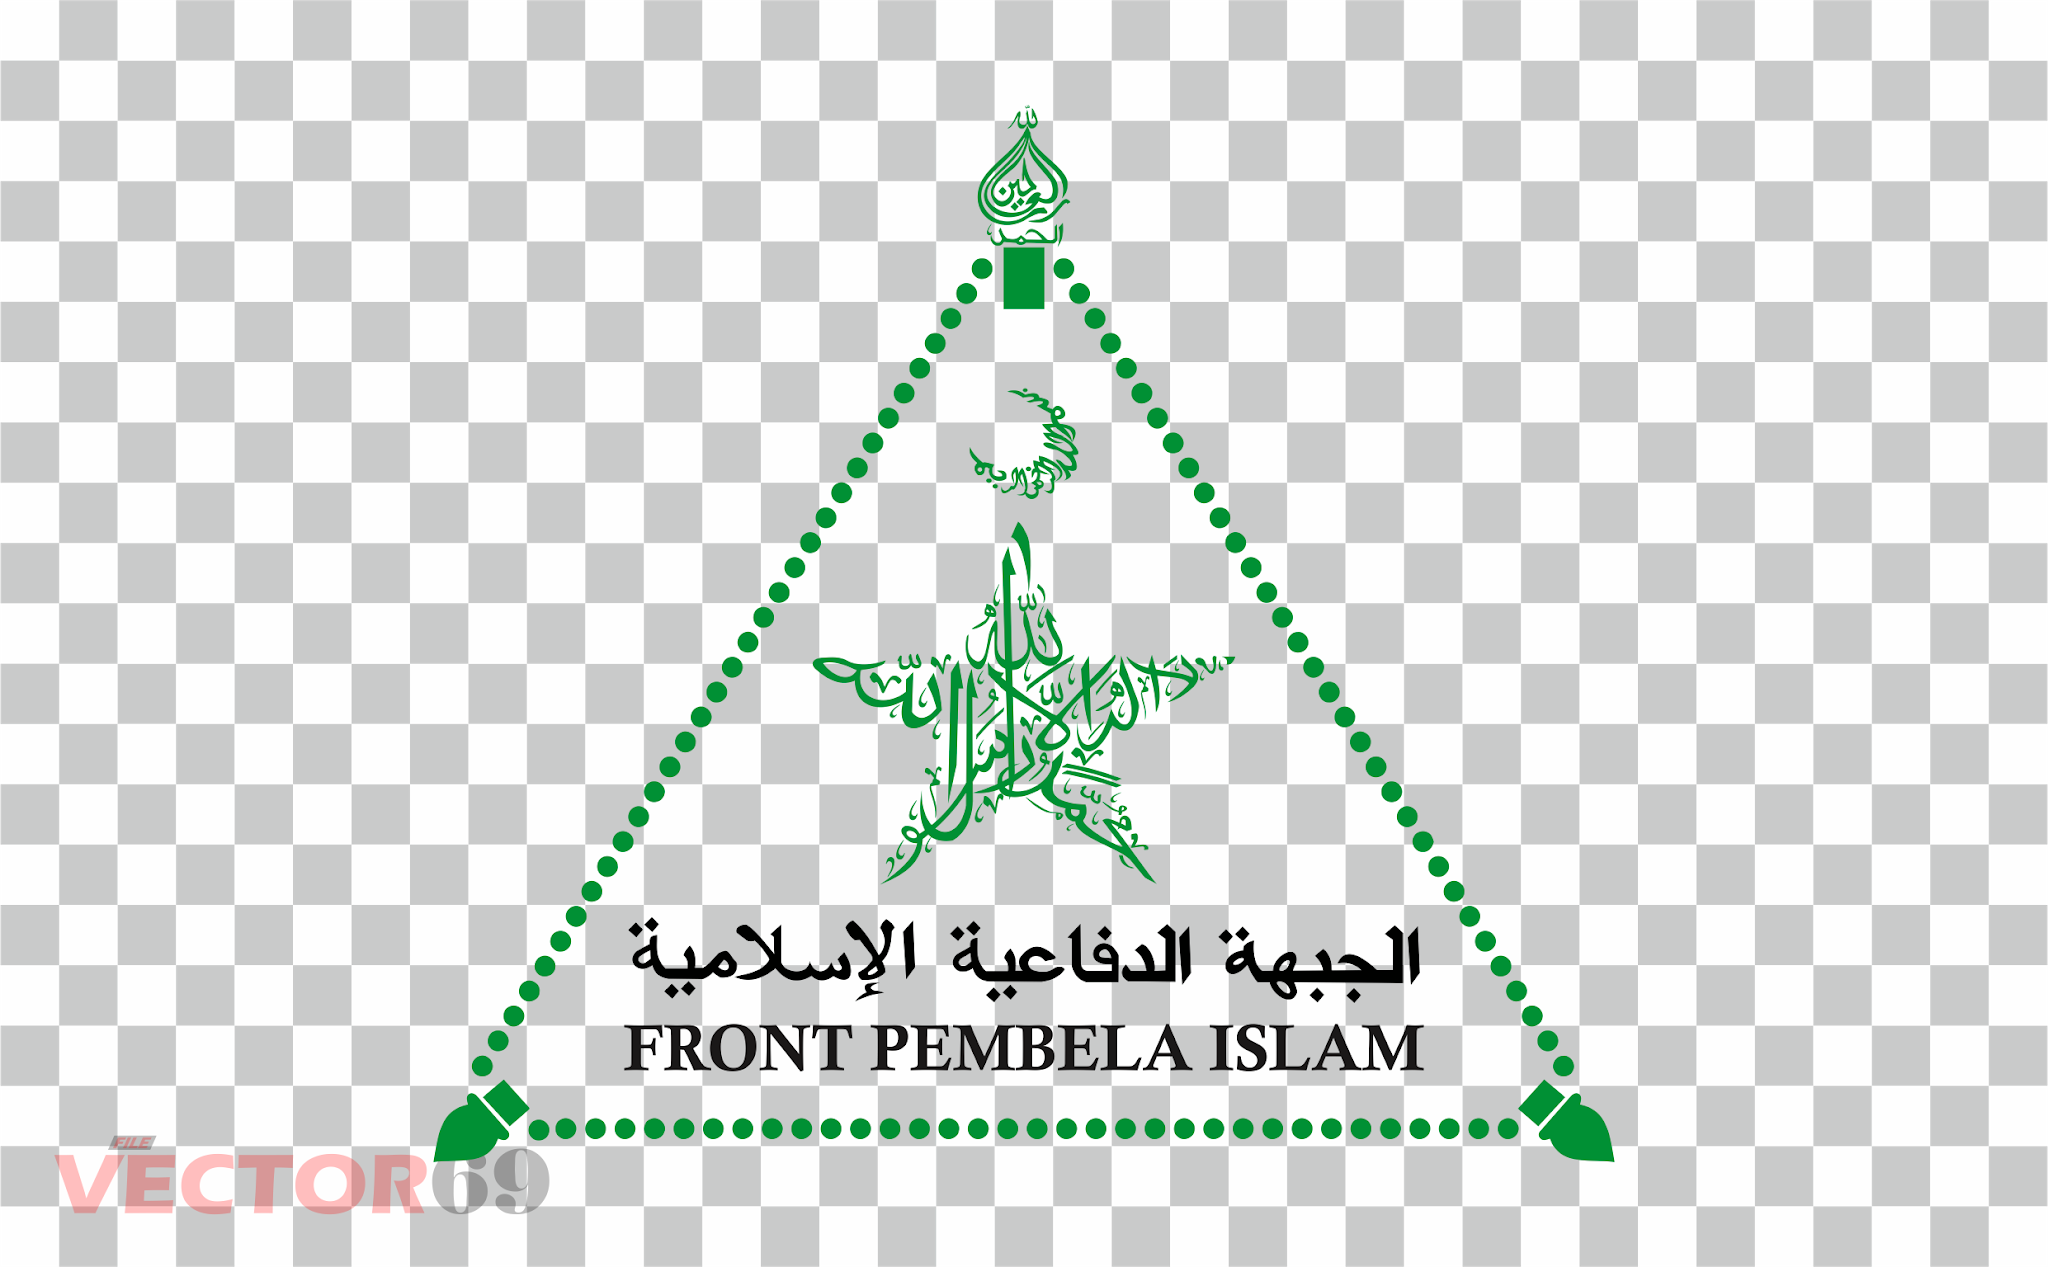 FPI (Front Pembela Islam) Logo - Download Vector File PNG (Portable Network Graphics)